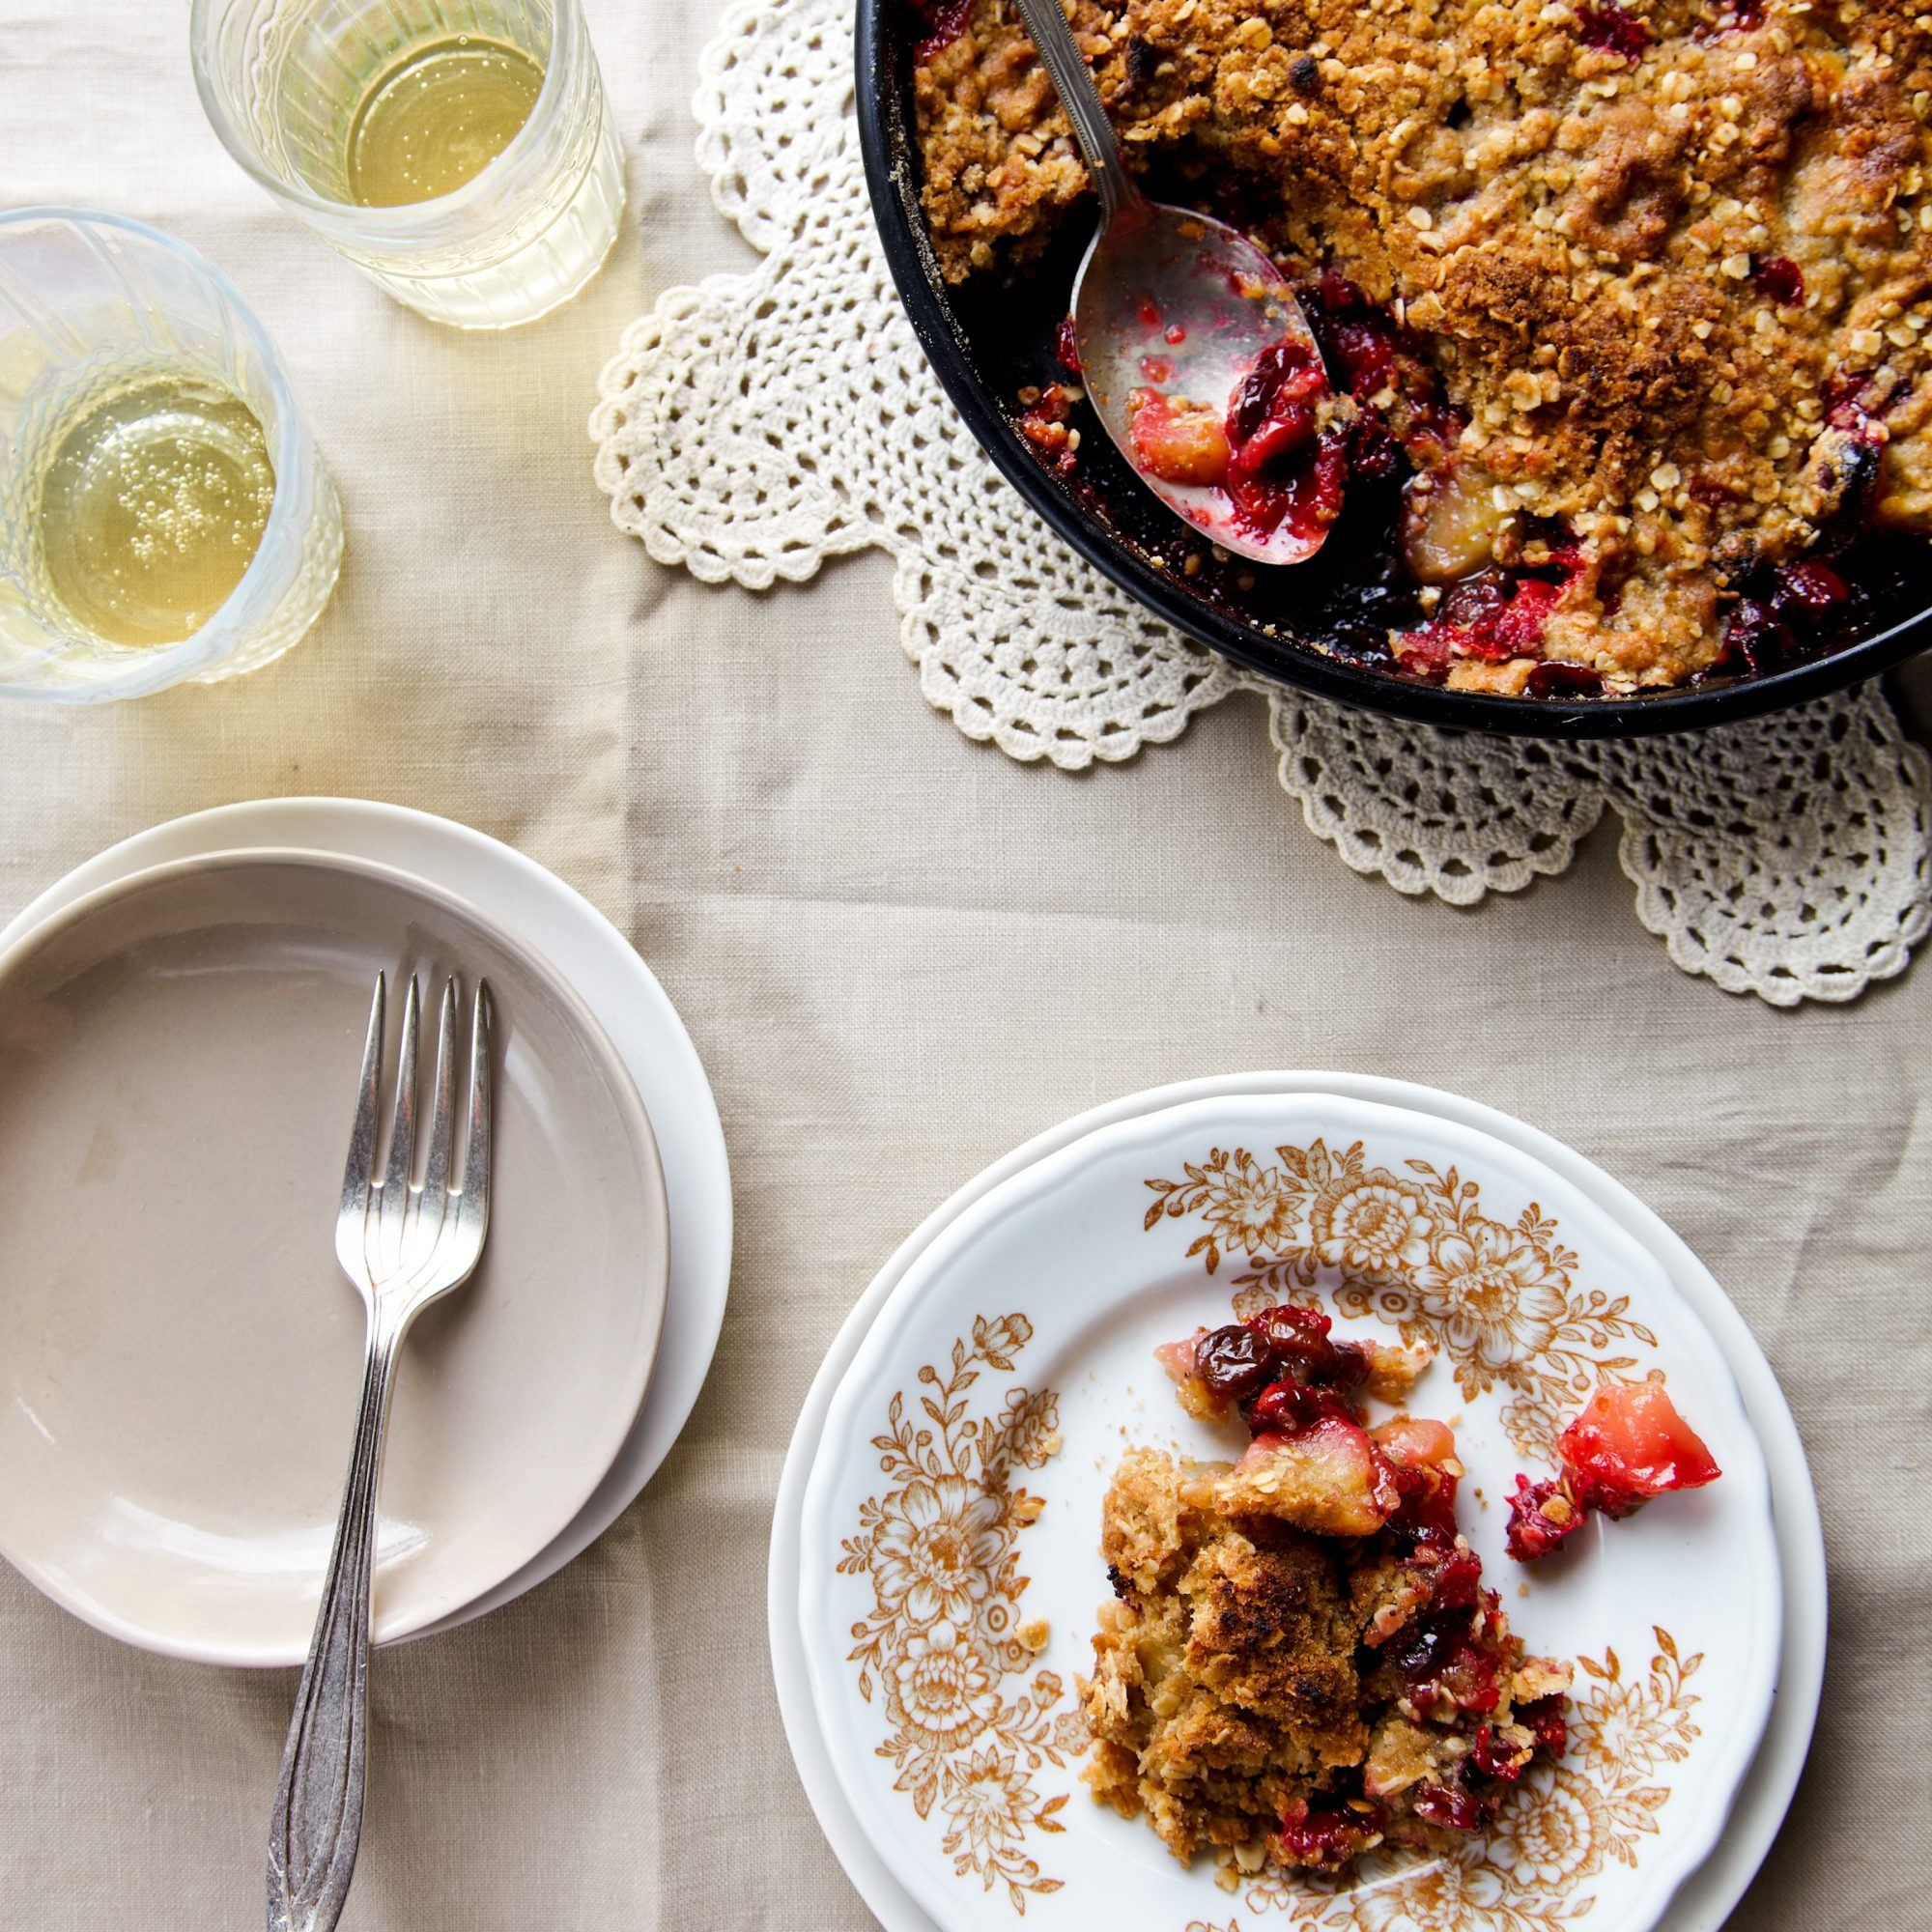 Easy Holiday Desserts like Cranberry Apple Raisin Crisp